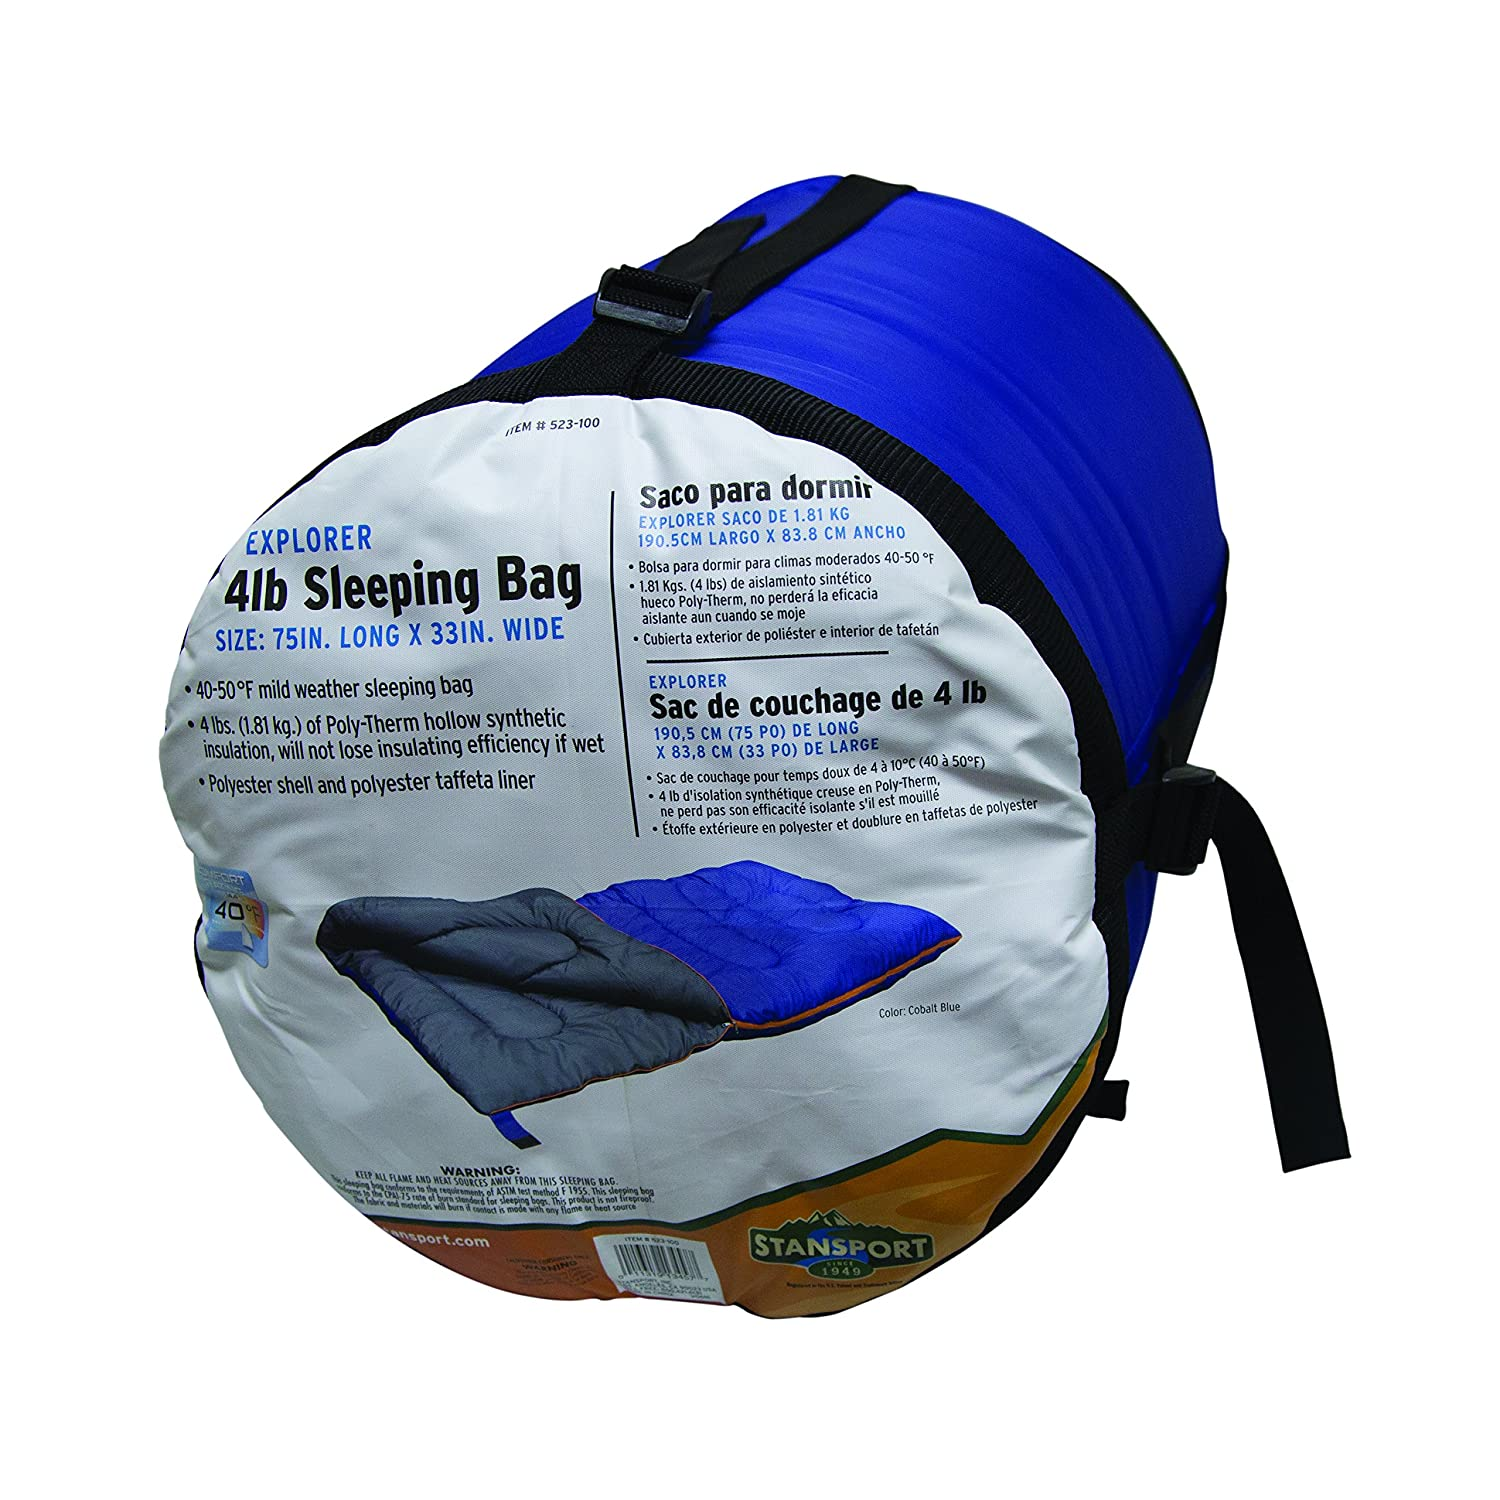 Amazon.com : Stansport Explorer 4 Lb. Sleeping Bag, 75